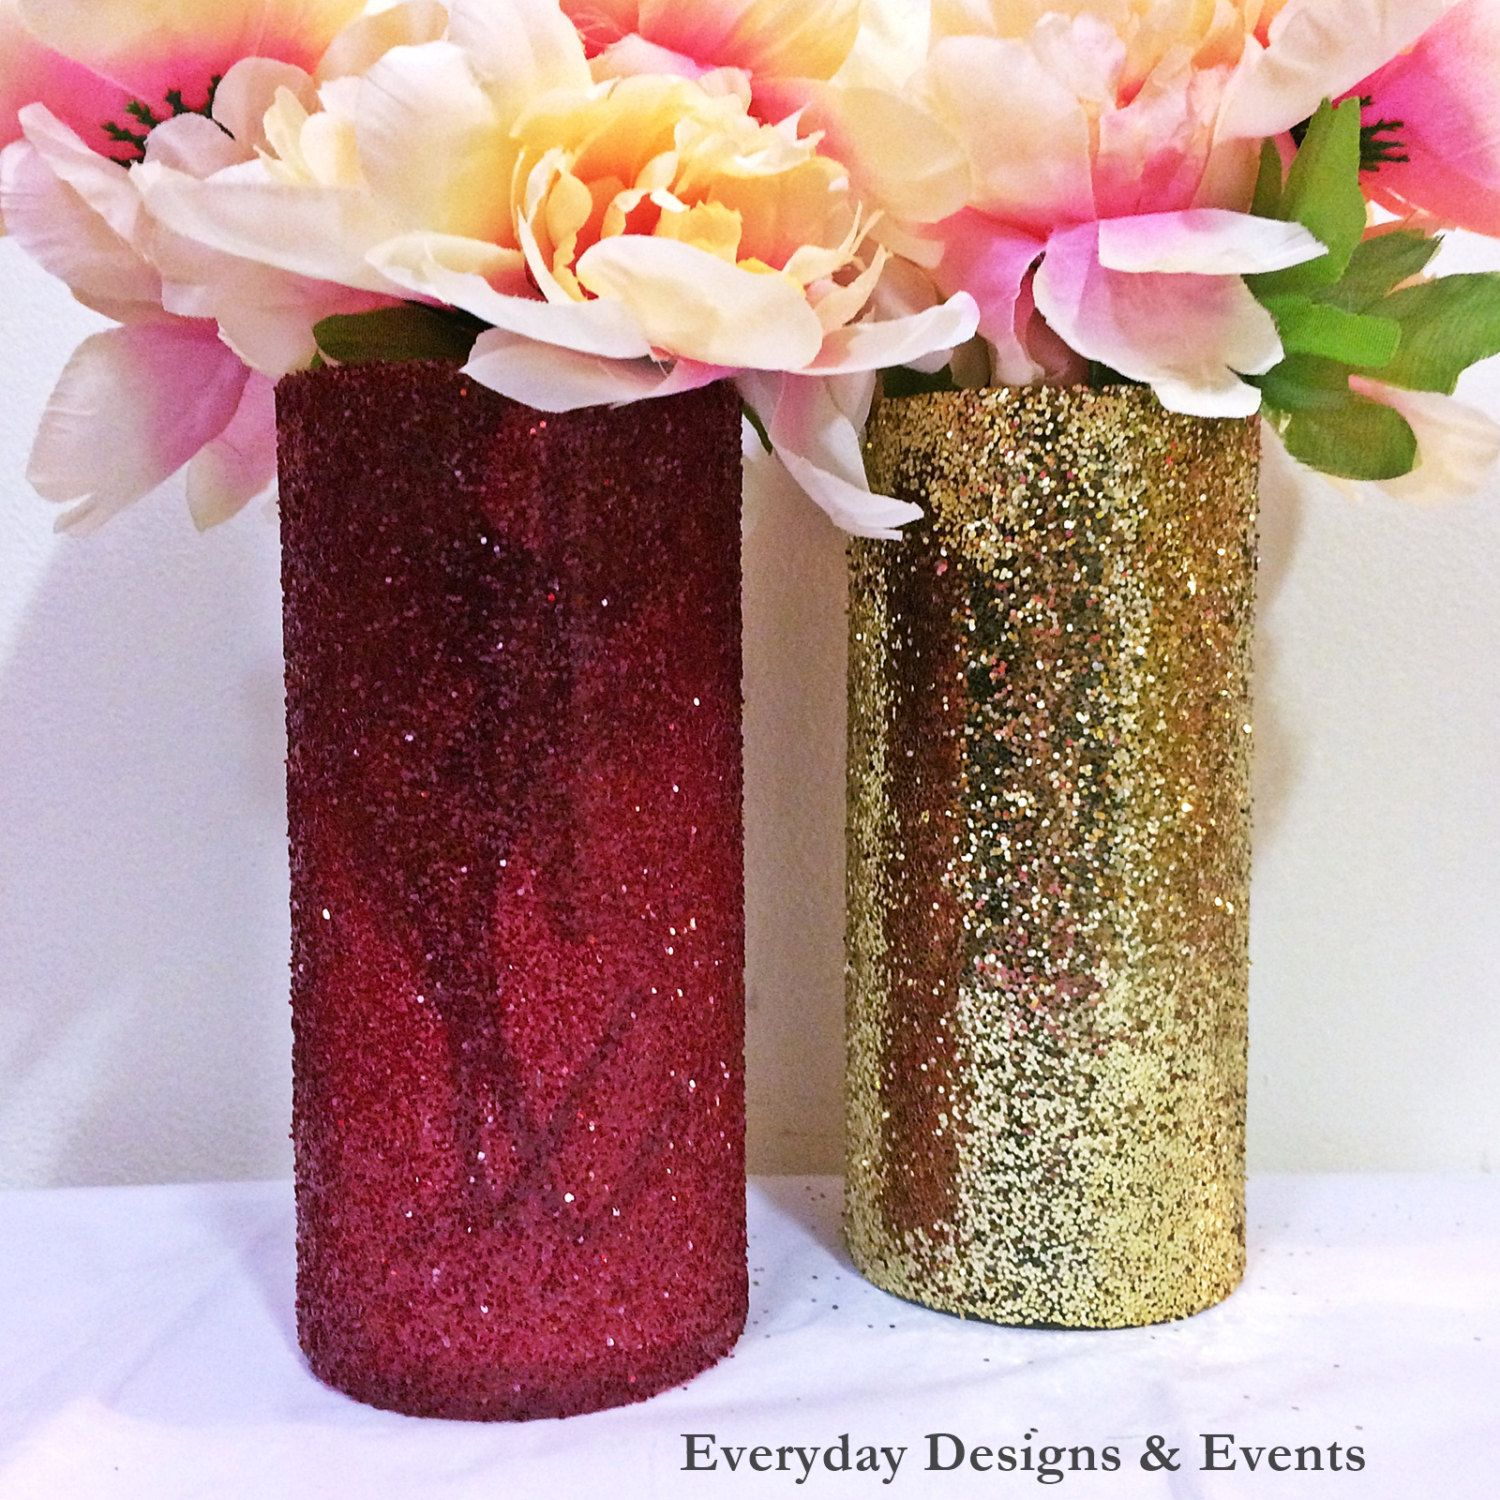 Gold Wedding Centerpieces: Maroon And Gold Vases, Wine Glass Vases, Red Wine Glitter